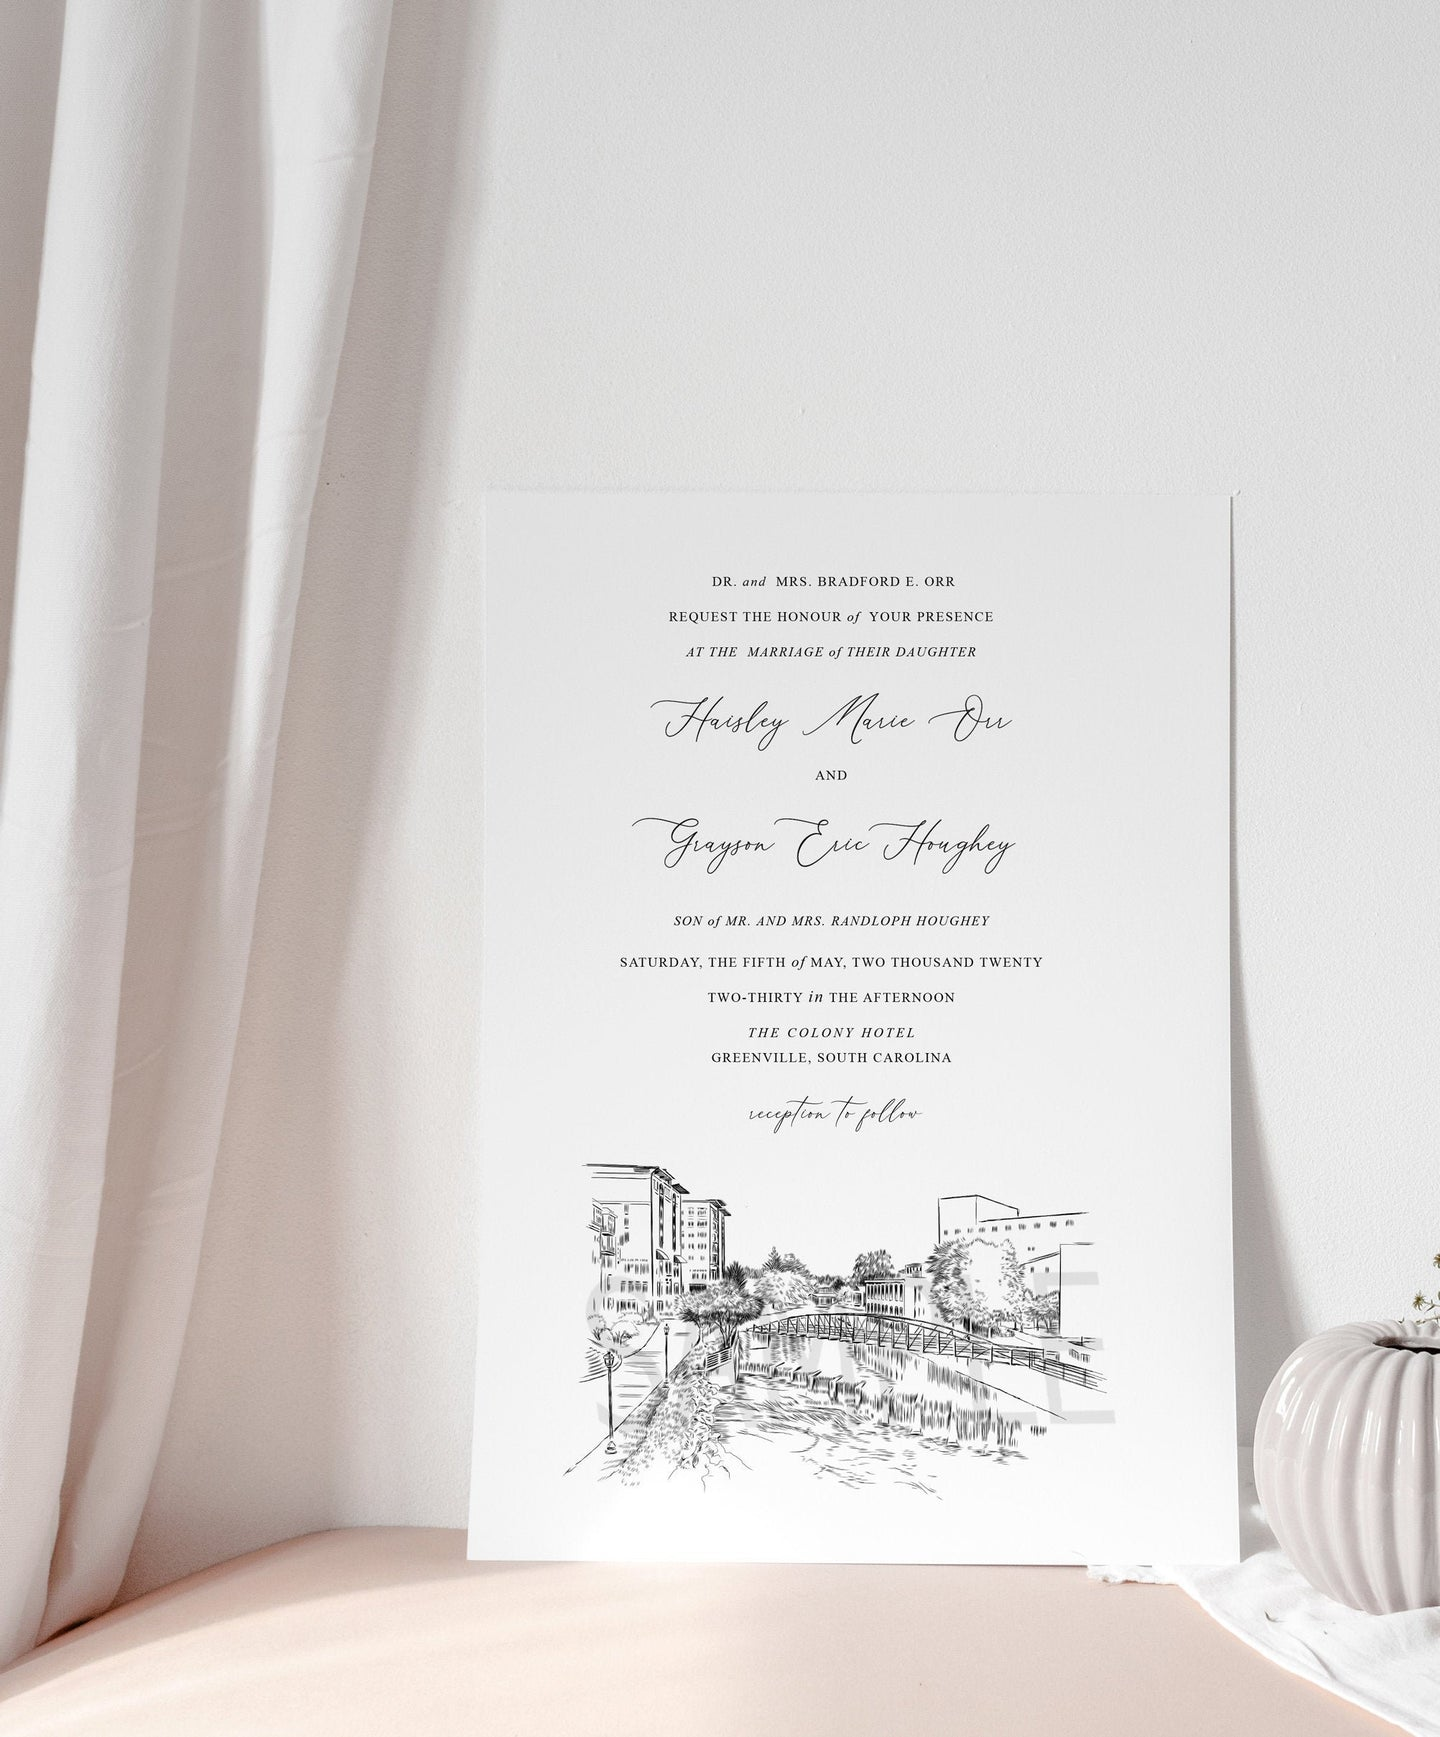 Greenville, SC Skyline Wedding Invitation, South Carolina Wedding, Greenville, SC Skyline Invite (Sold in Sets of 10 Invitations + Env's)